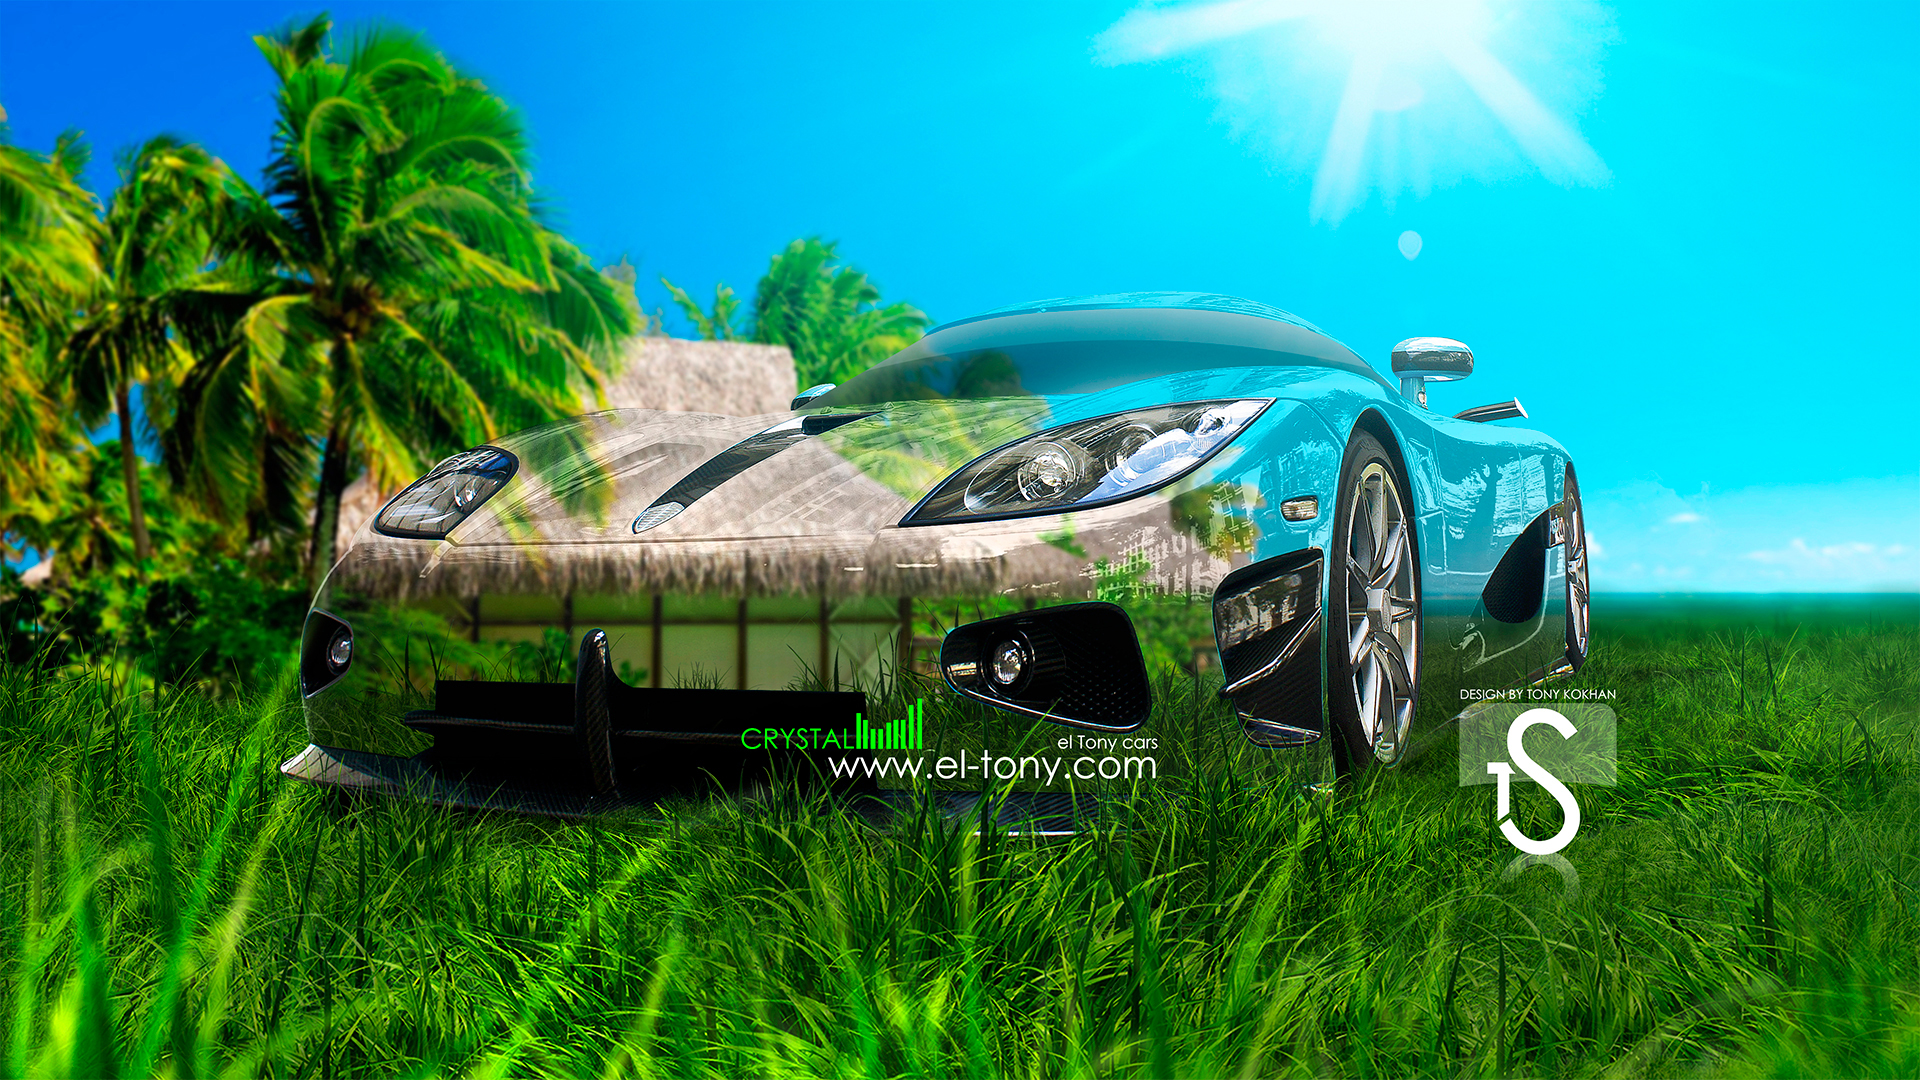 Captivating Beau Koenigsegg CCXR Crystal Car 2013 Nature Green Grass HD Wallpapers  Design By Tony Kokhan 1920